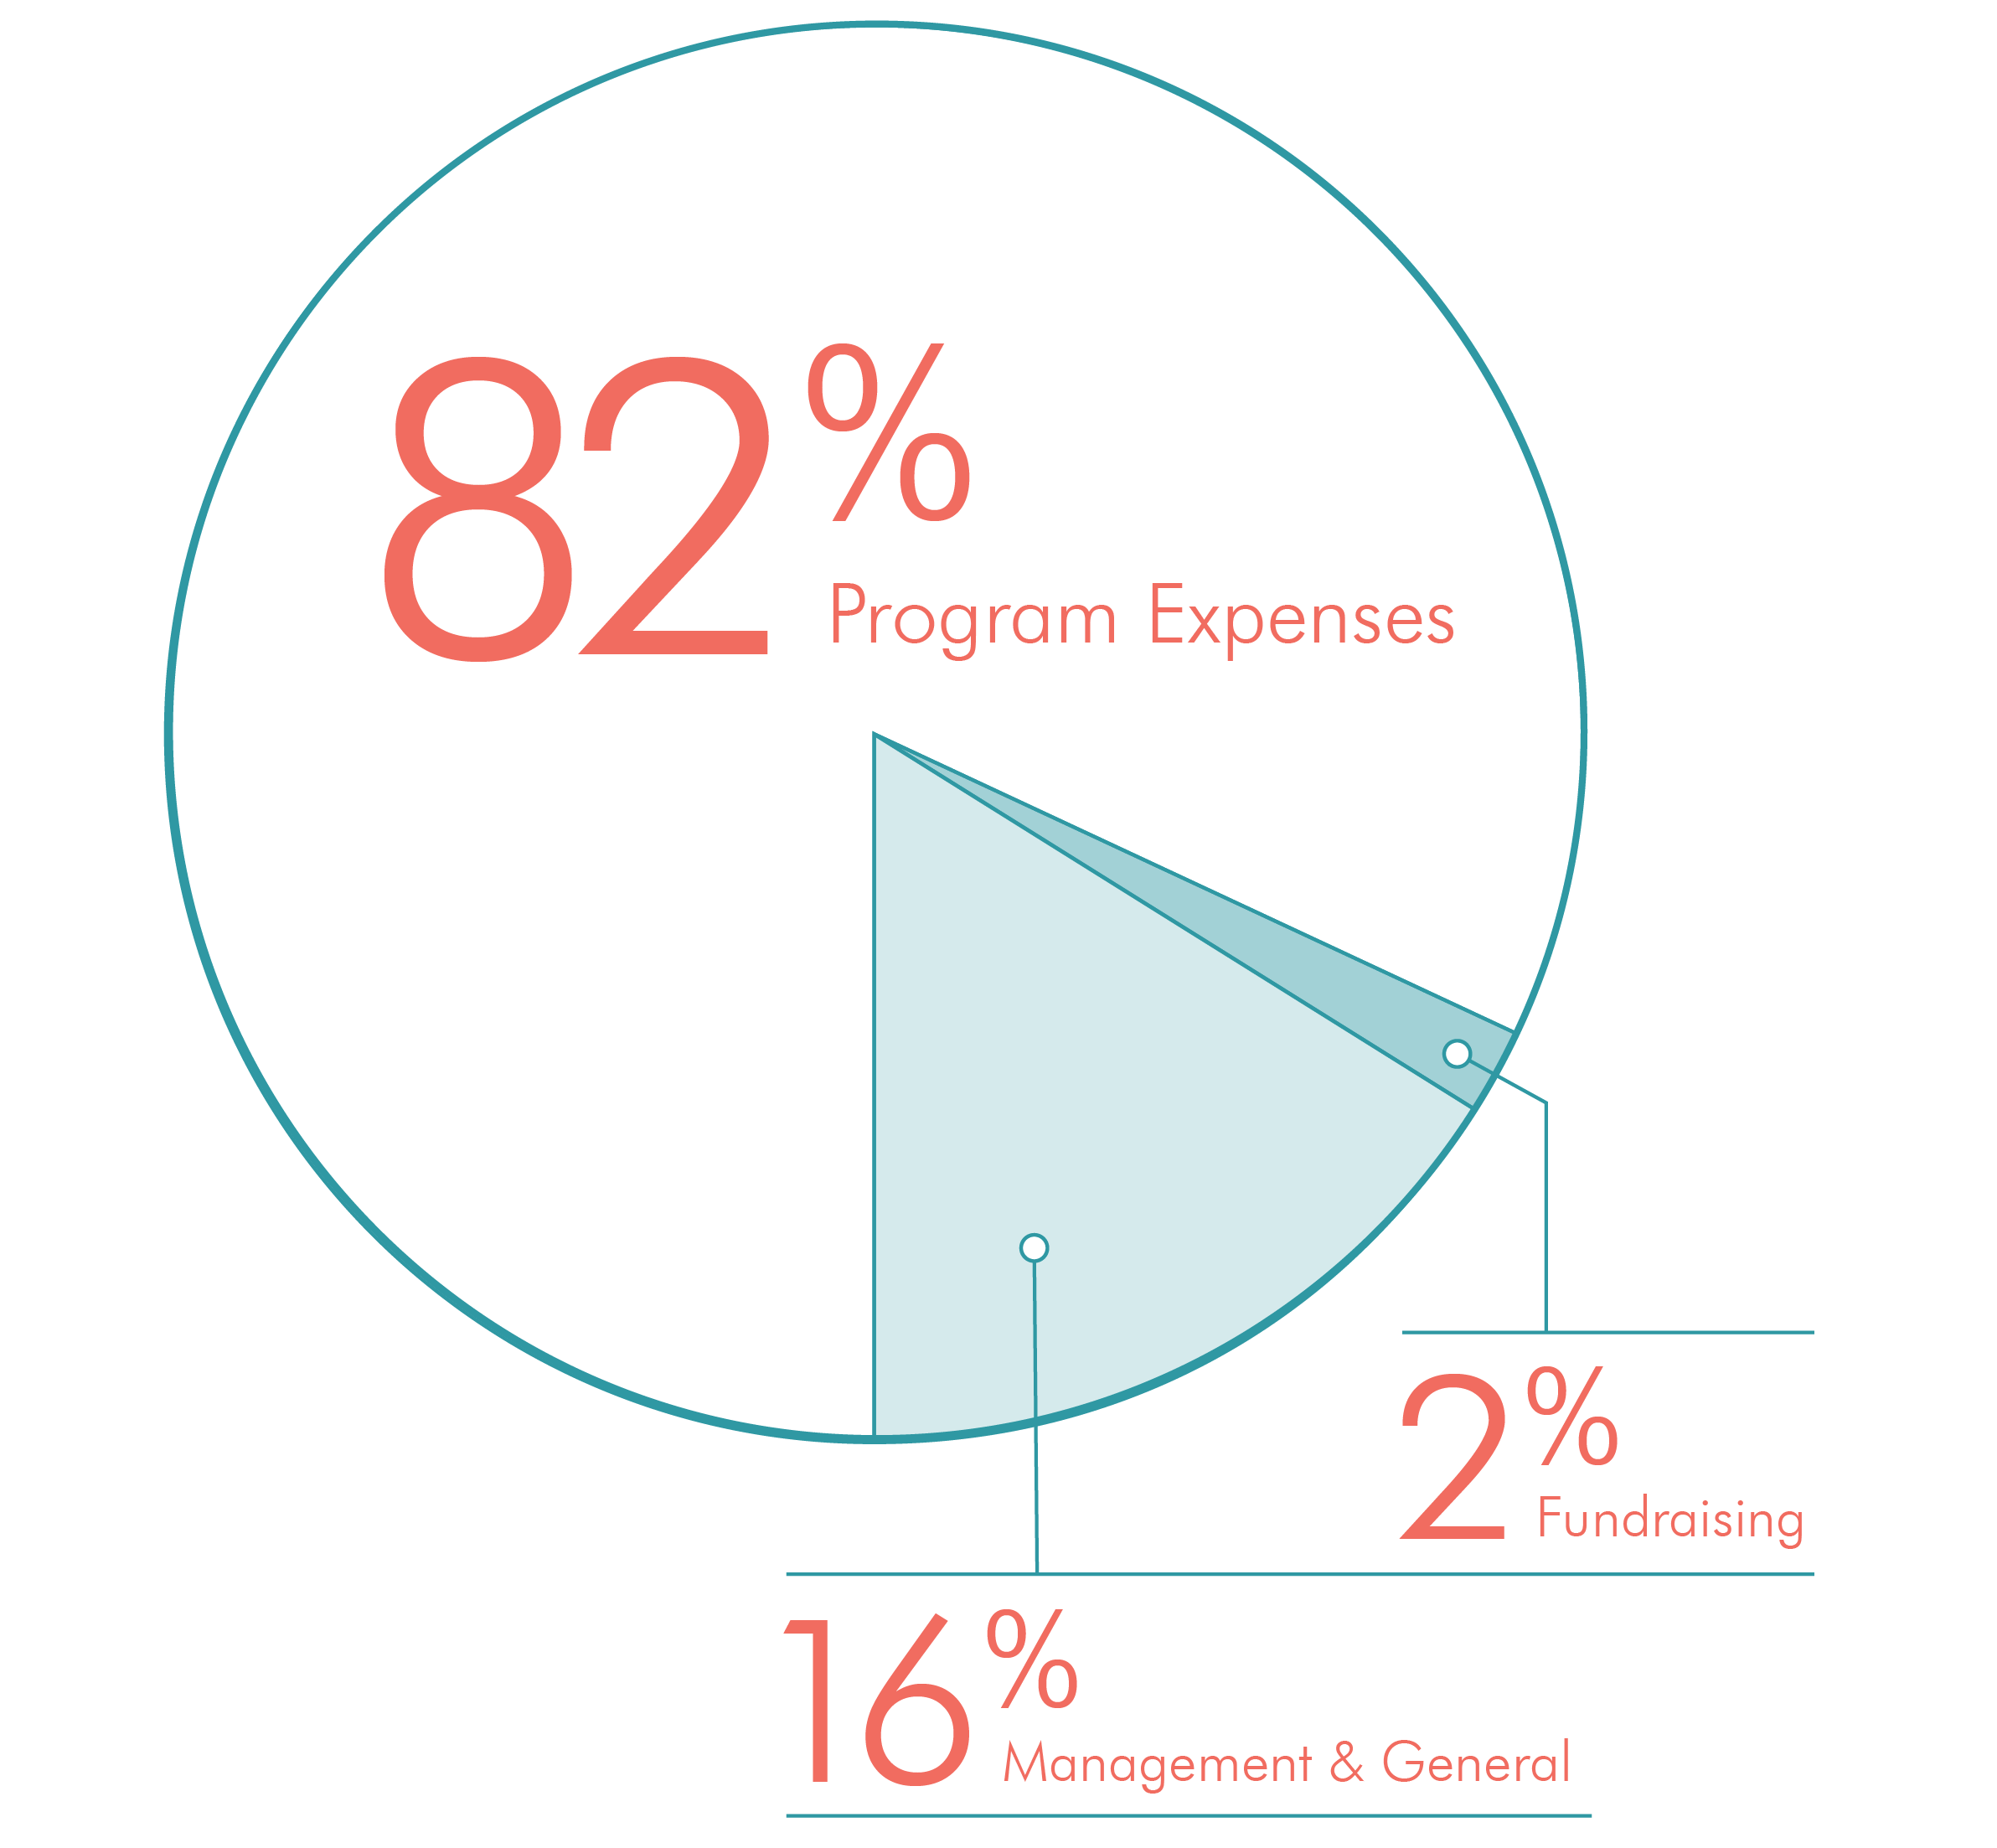 Chart showing 82% to Program Expenses, 16% to Management & General, and 2% to fundraising